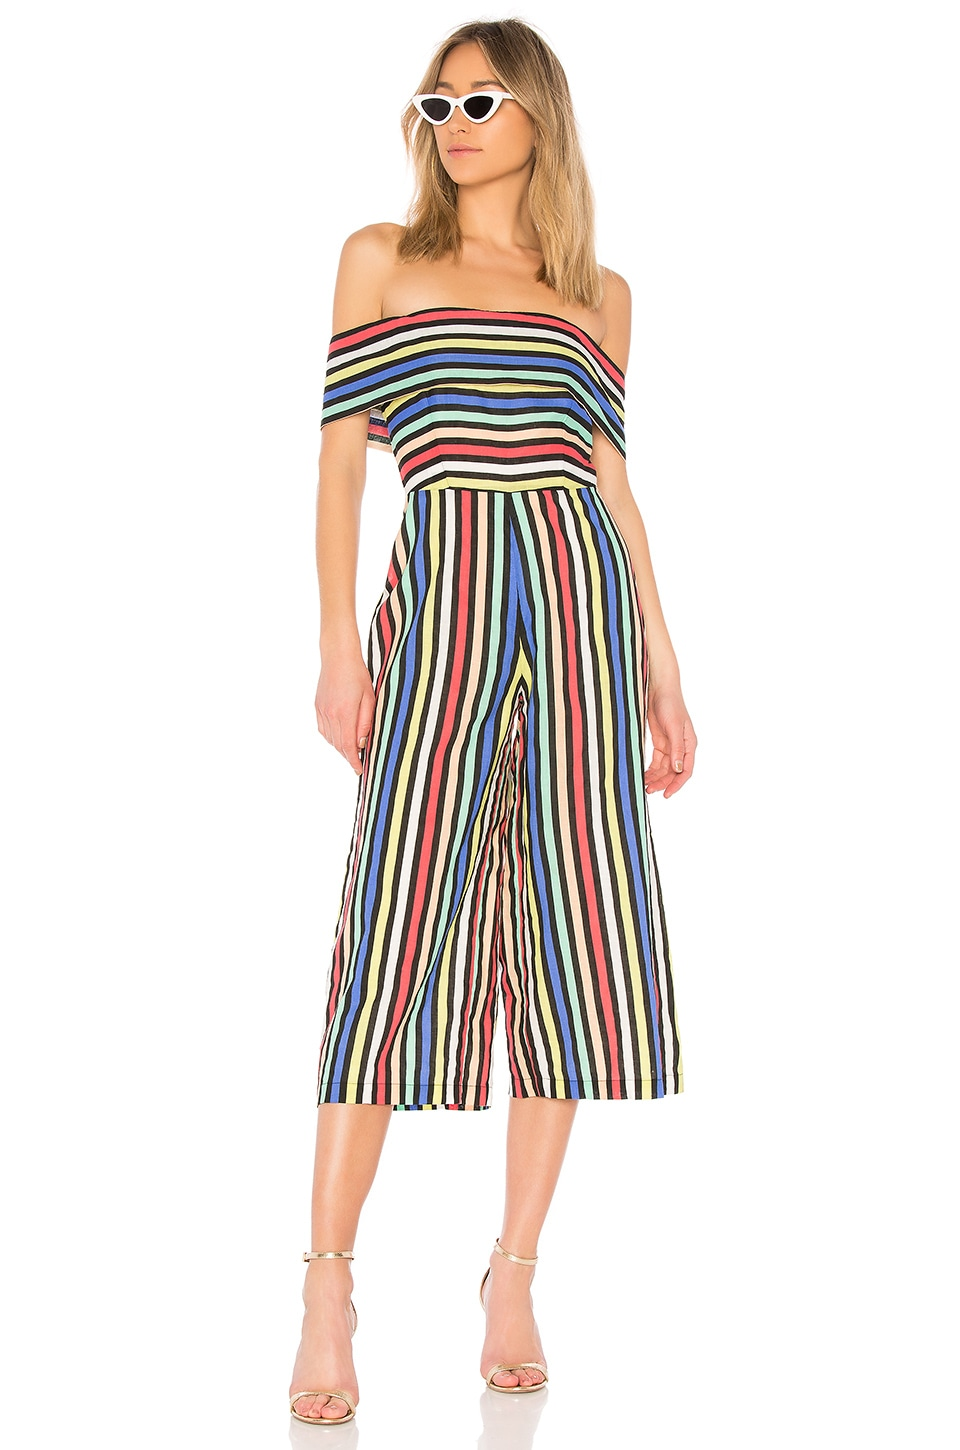 House of Harlow 1960 x REVOLVE Hugh Jumpsuit in Colmar Stripe